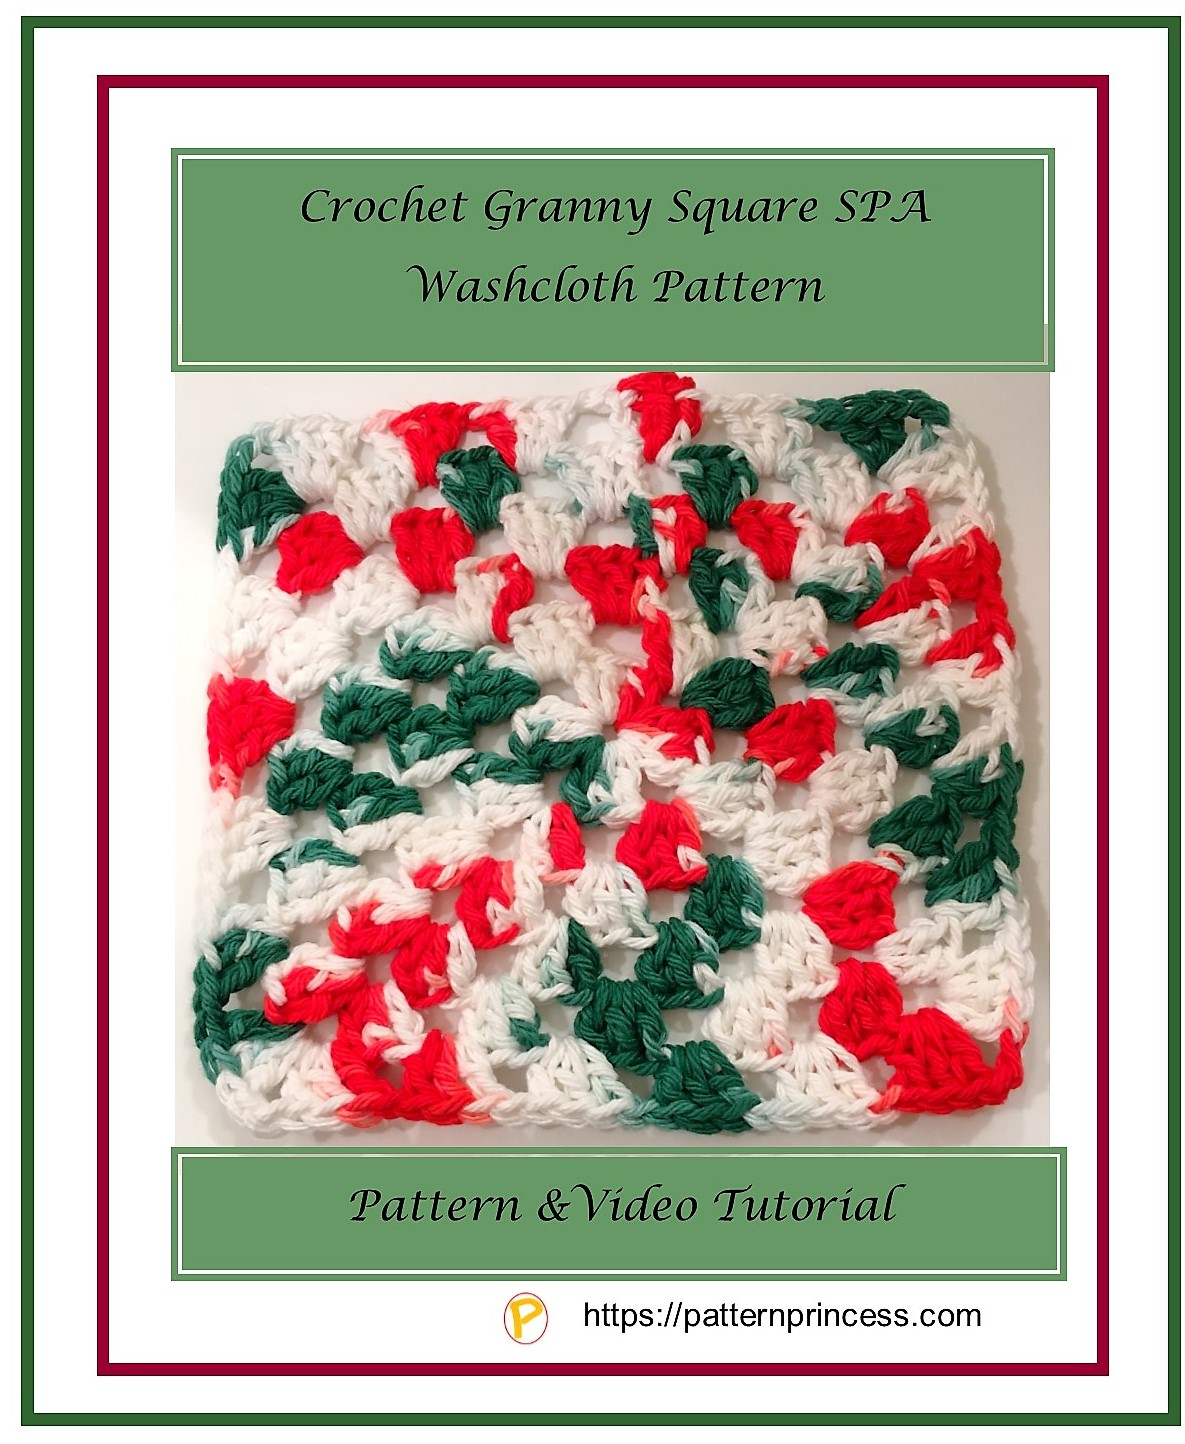 Crochet Granny Square SPA Washcloth Pattern in Holiday color